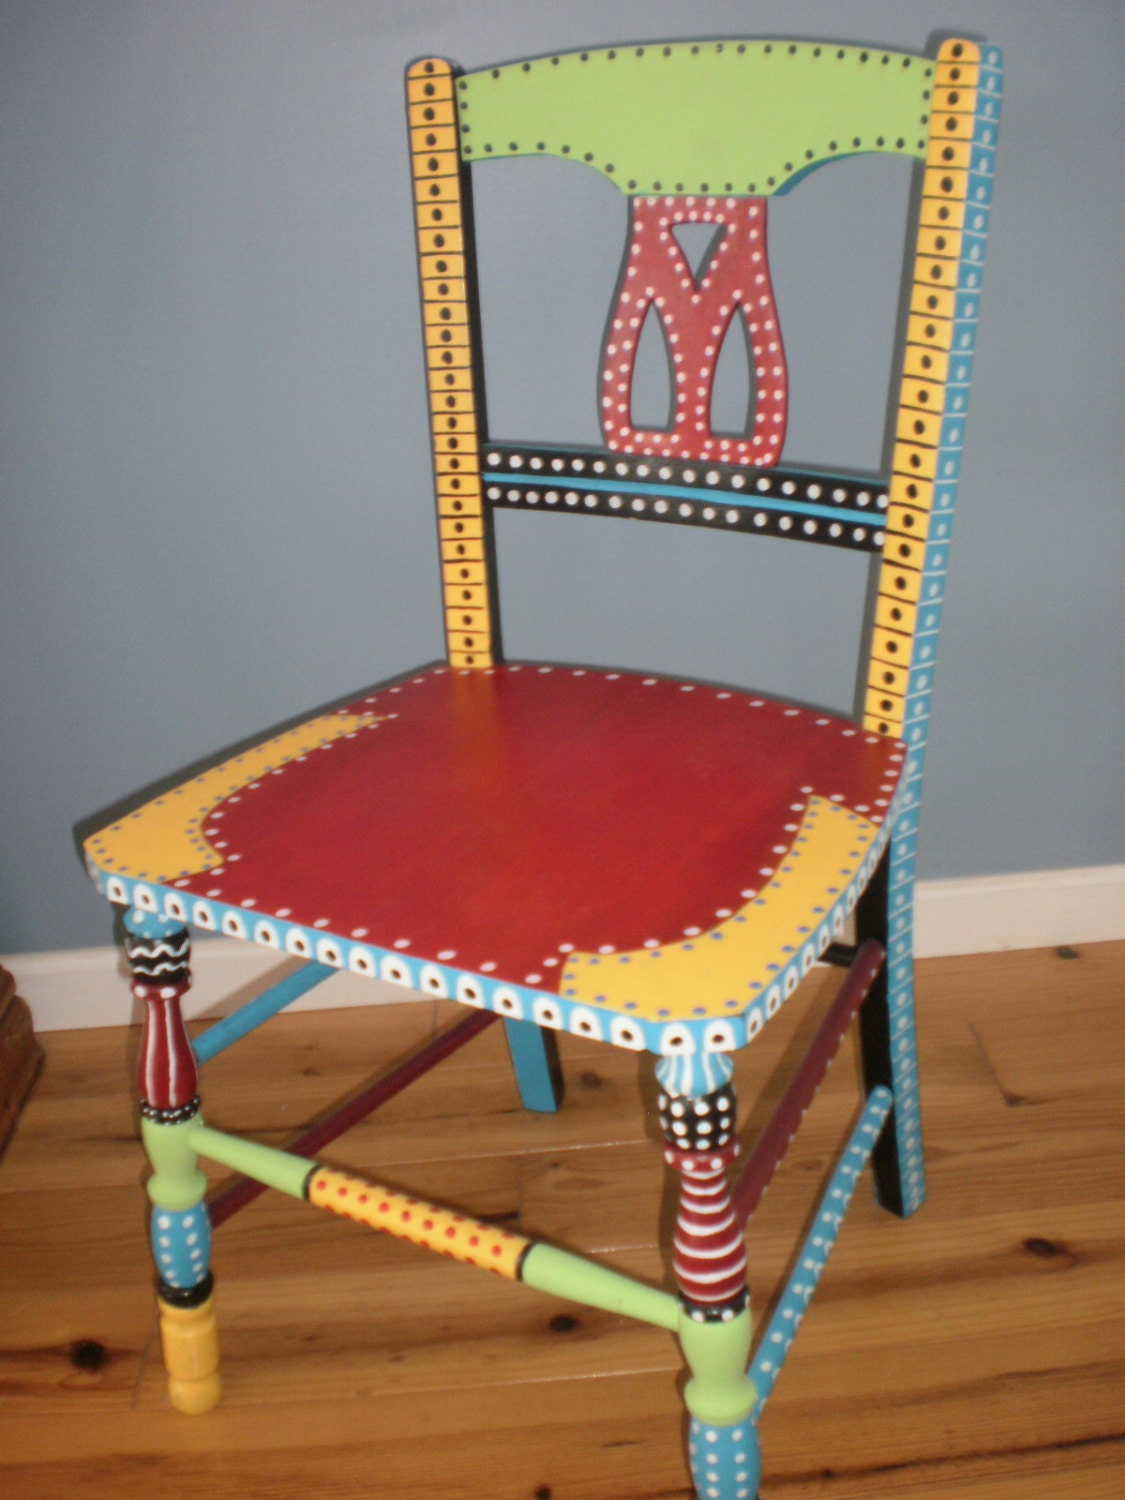 Hand painted whimsical chair gypsy folk art brilliant colors for Painting designs on wood furniture